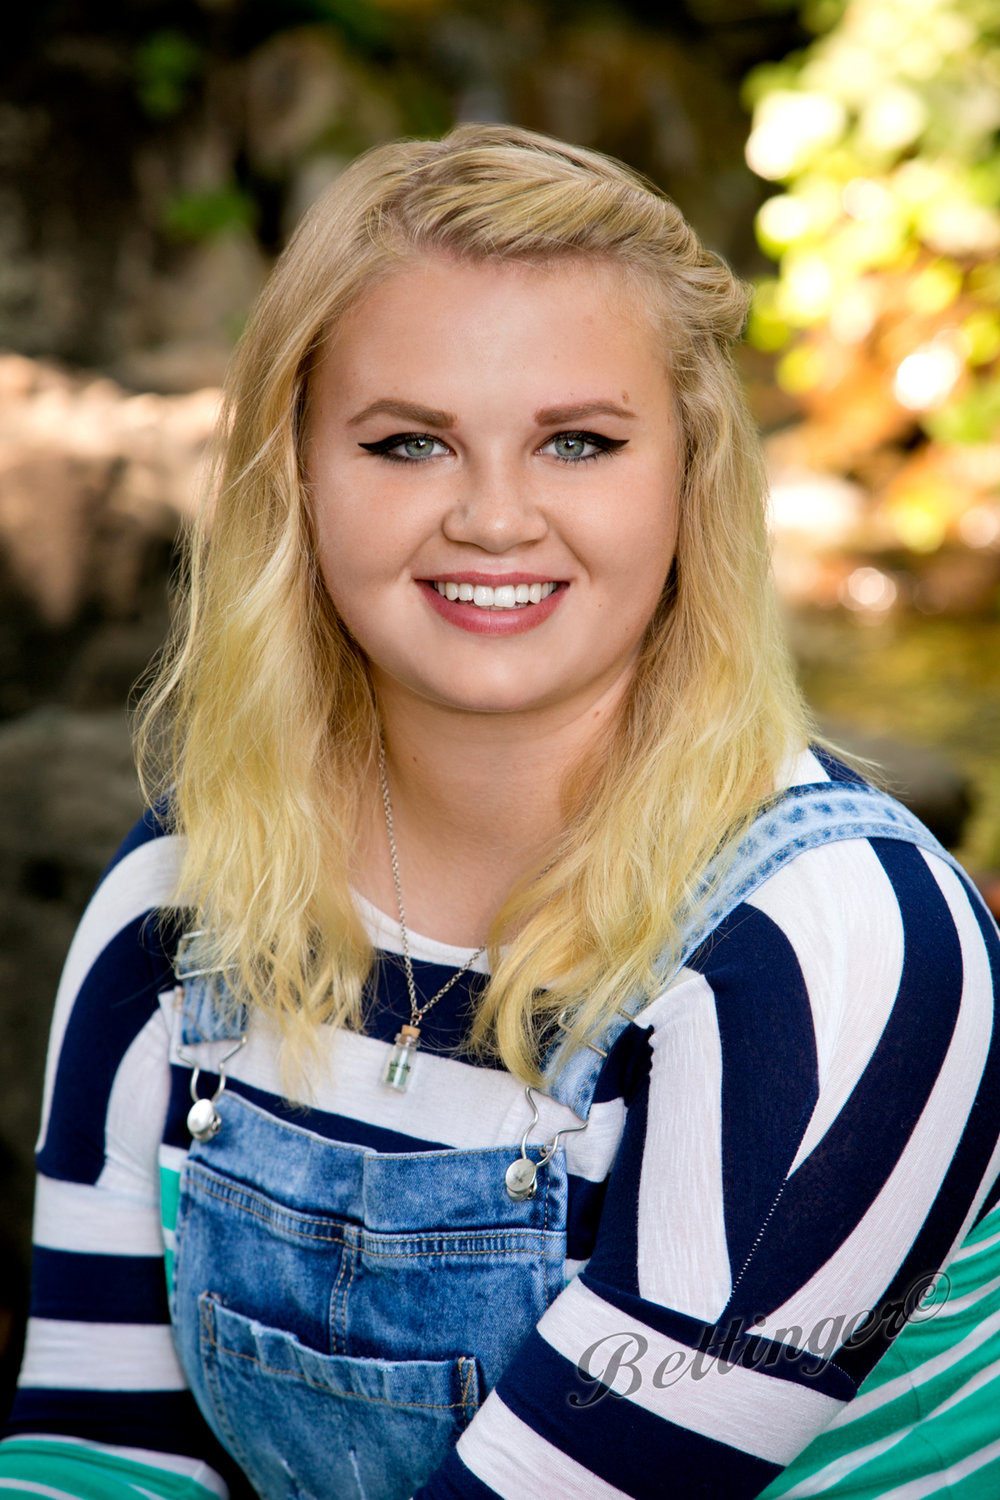 - Achievements include making the National Honor Society, receiving the Clara Schuman award for Music and the St. Paula award for Latin plus making the Honor Roll.  She wants to go to Michigan State University to major in Anthropology.